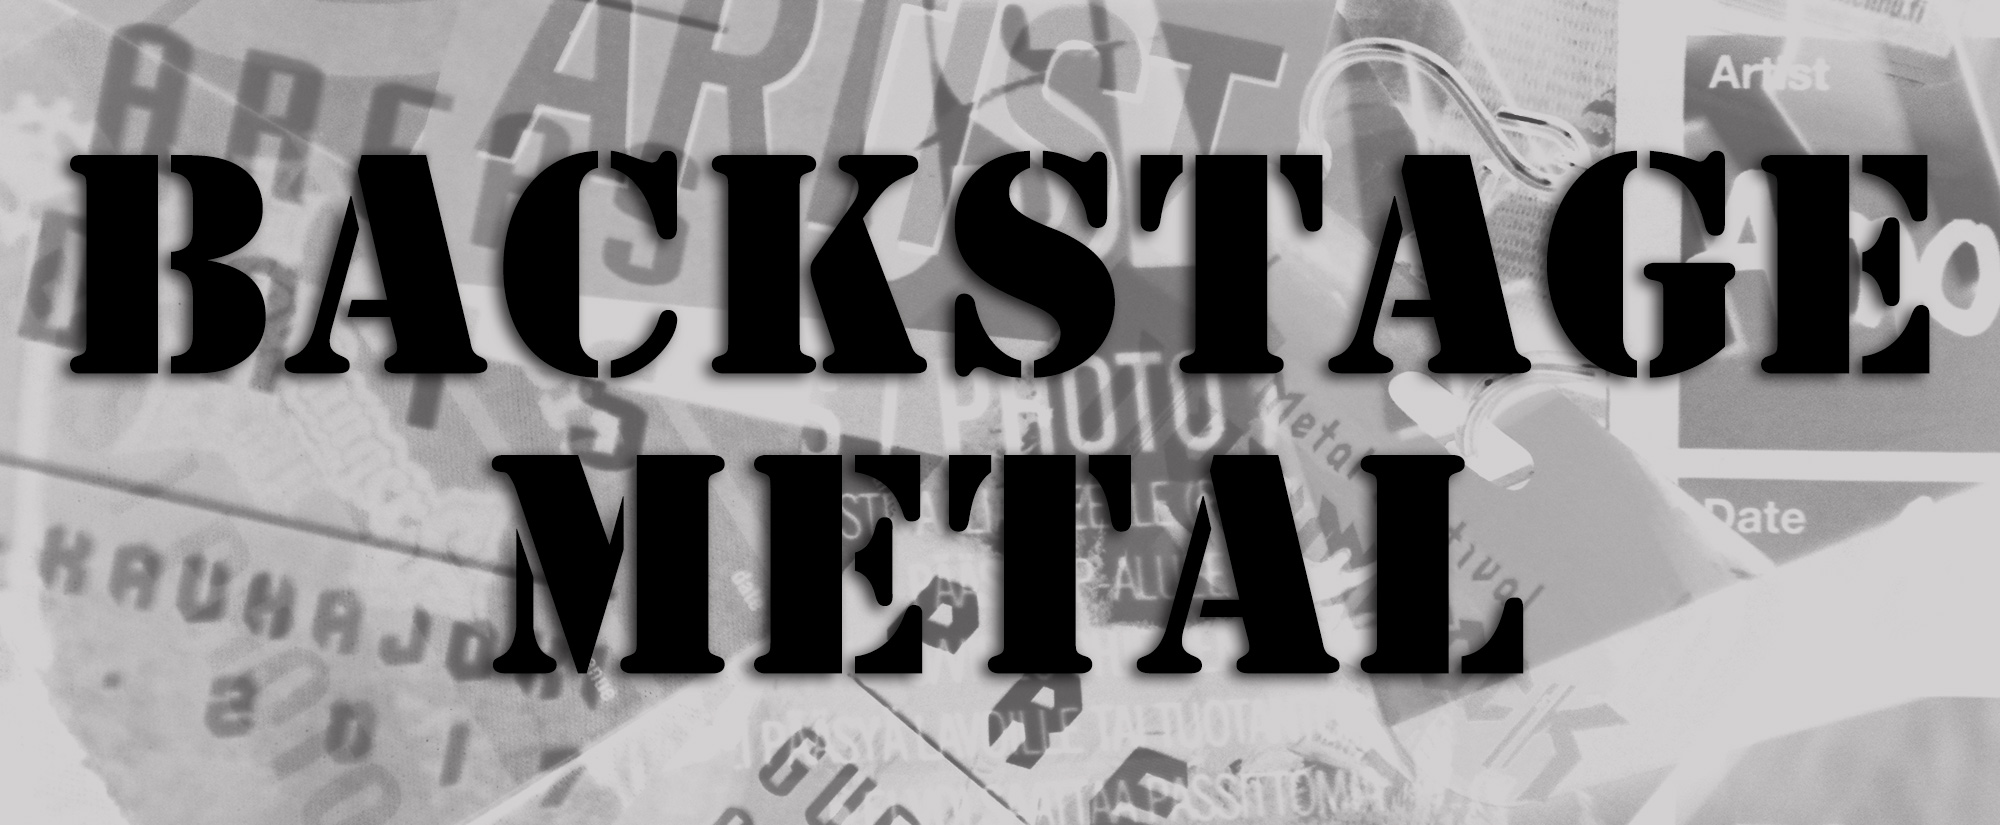 Backstage Metal – Part 3: The Tour Manager (TM)